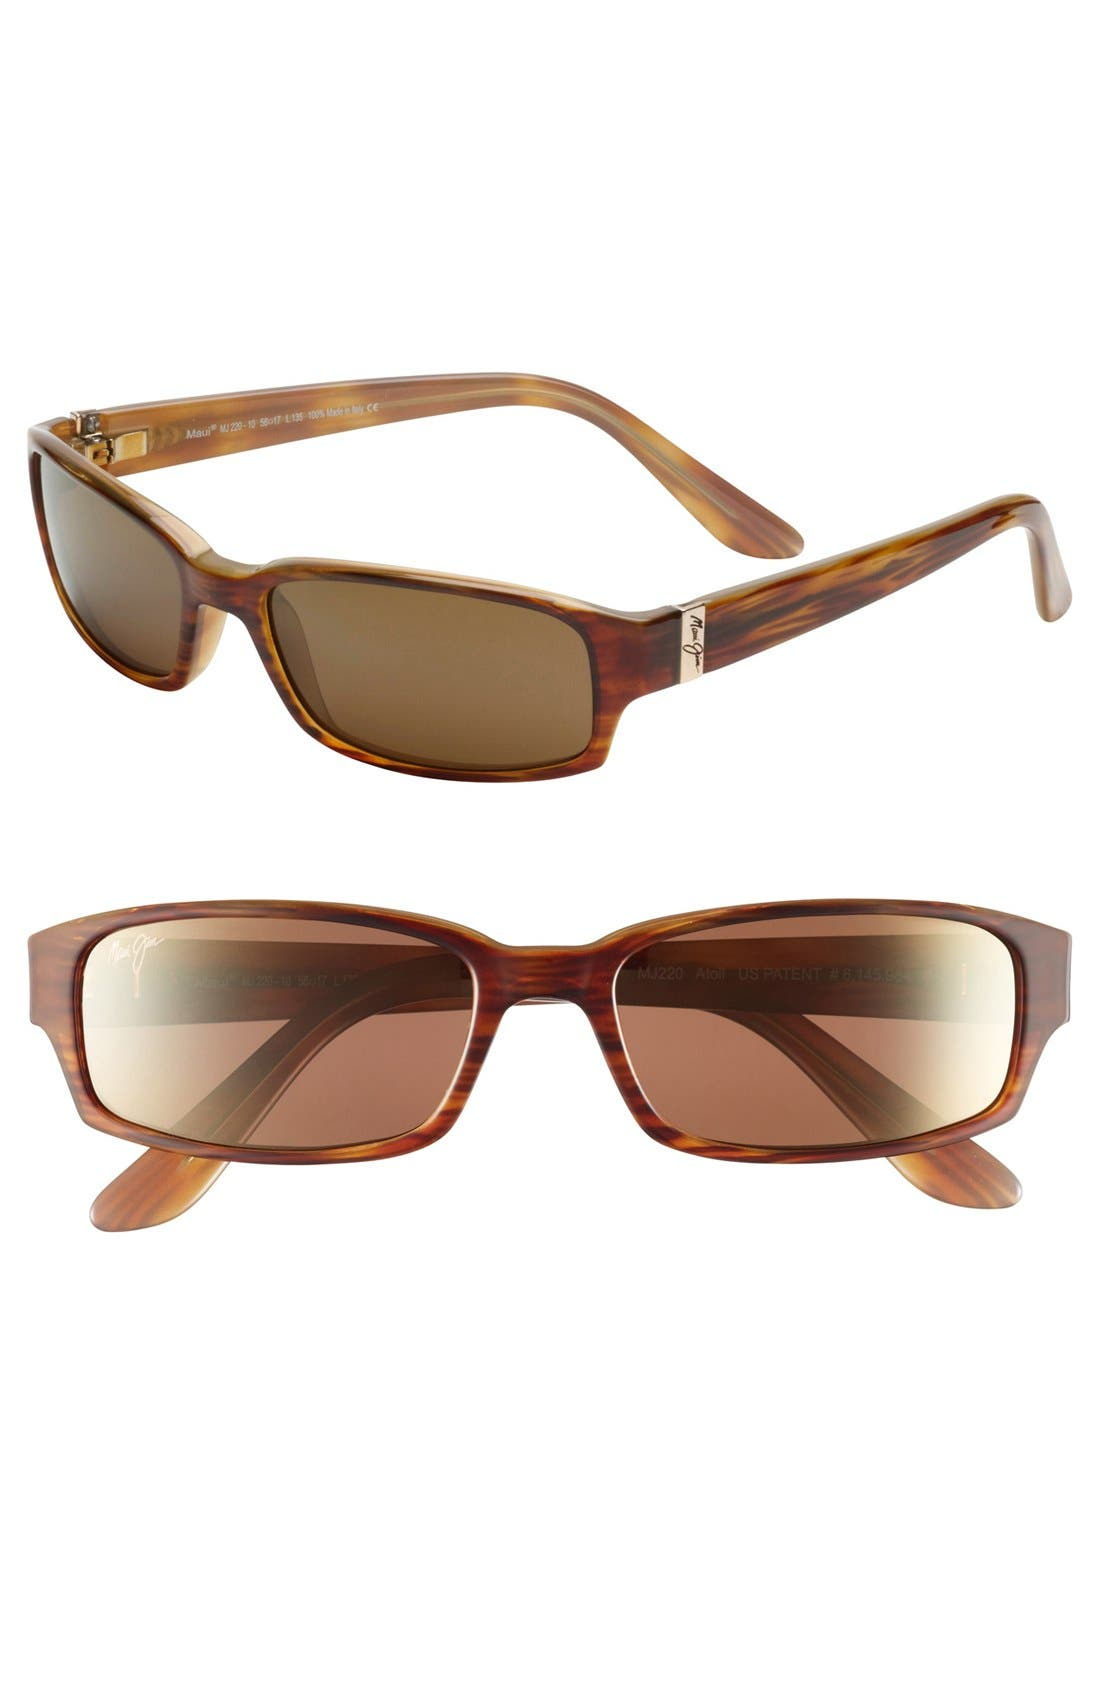 Atoll 56mm PolarizedPlus2<sup>®</sup> Sunglasses,                             Main thumbnail 1, color,                             Tortoise